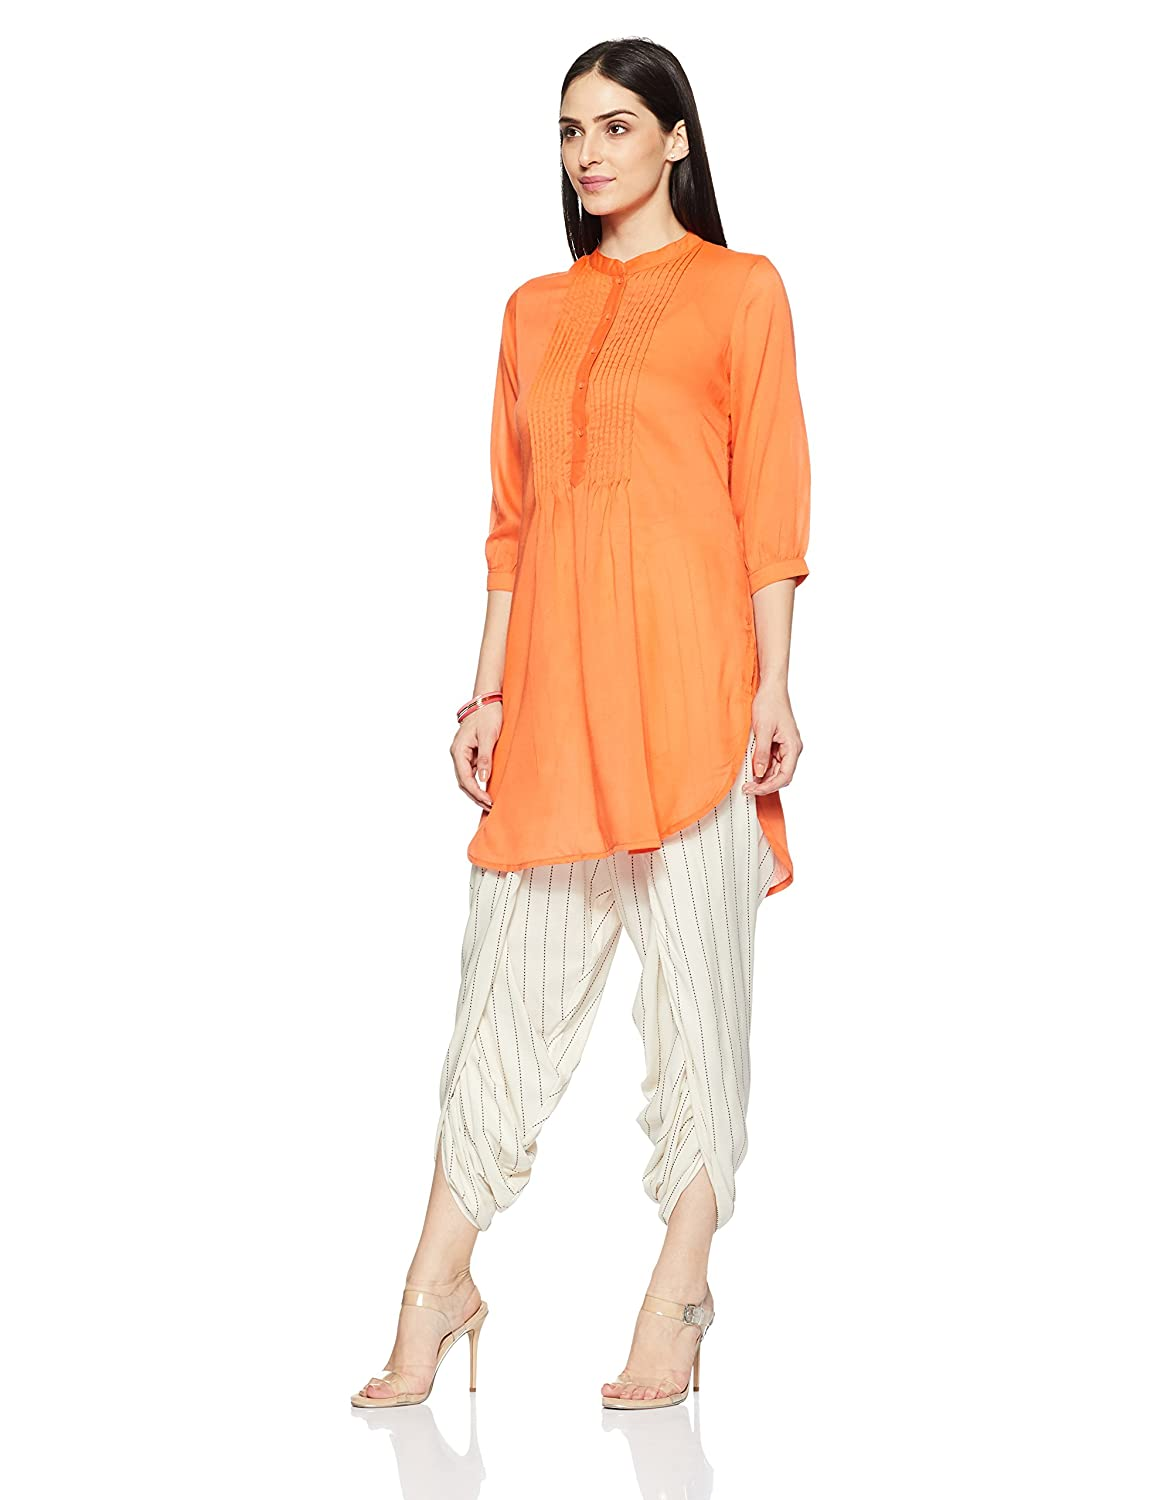 Women's ethnic wear Straight fit Kurta